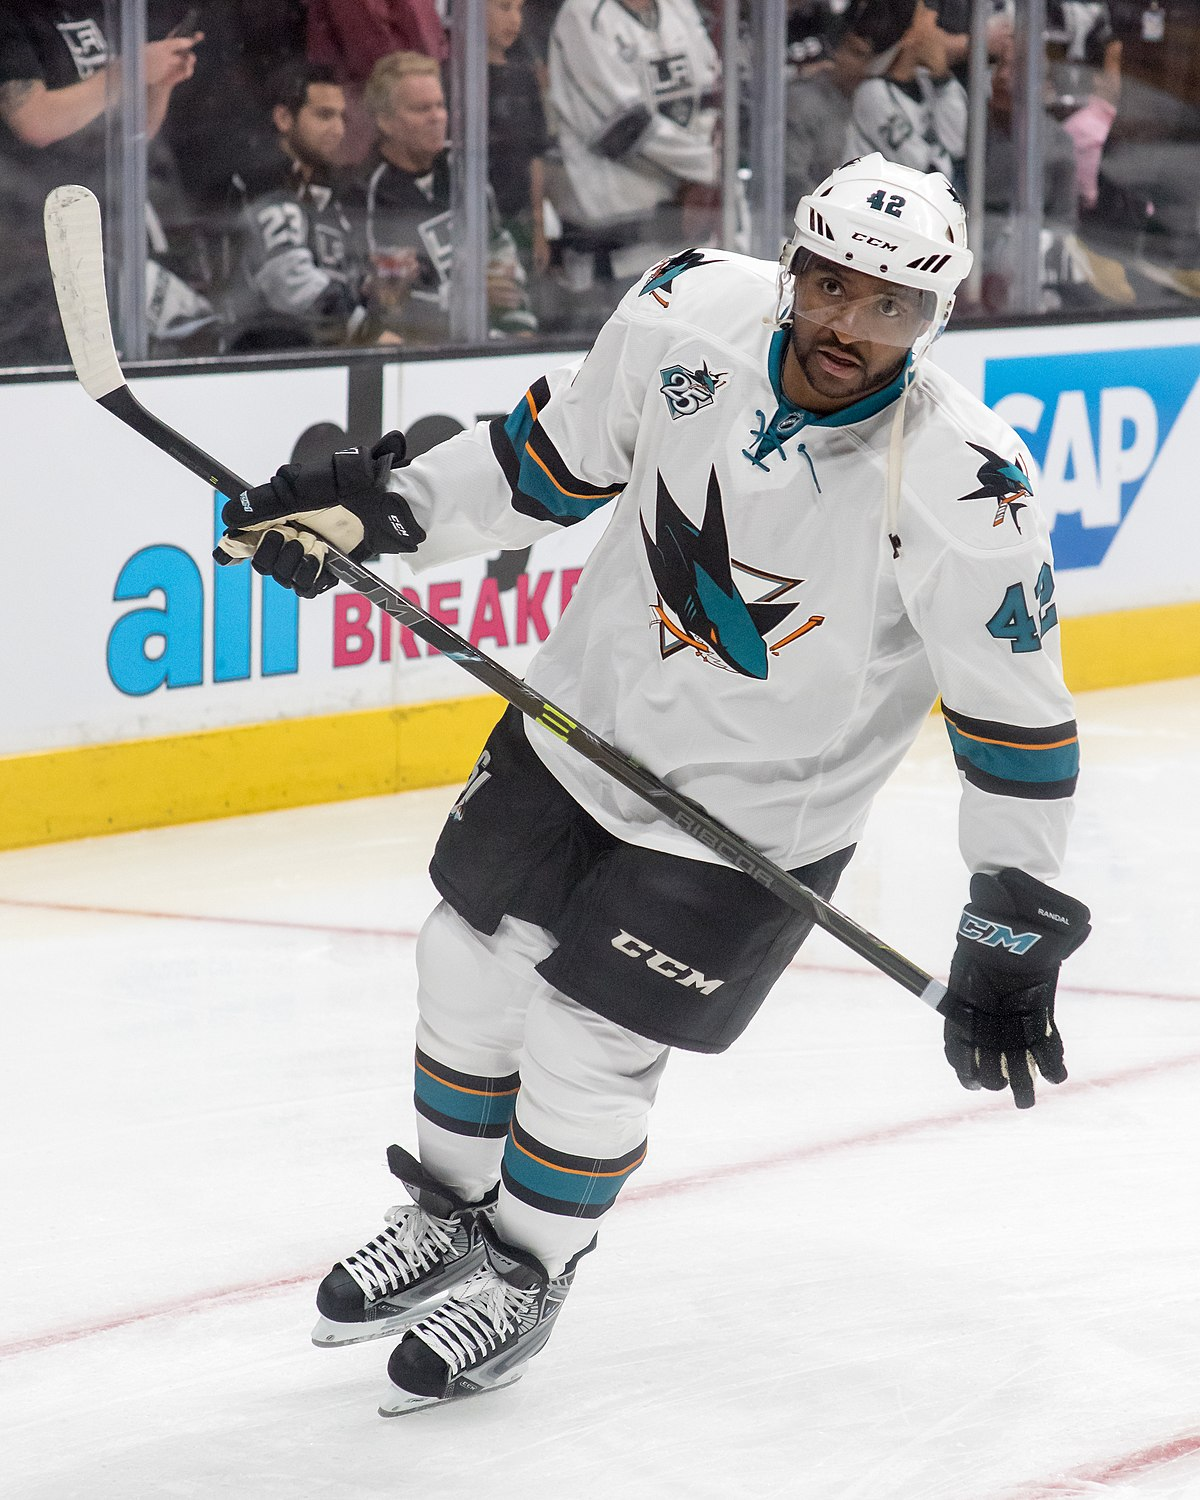 Joel Ward Ice Hockey Wikipedia